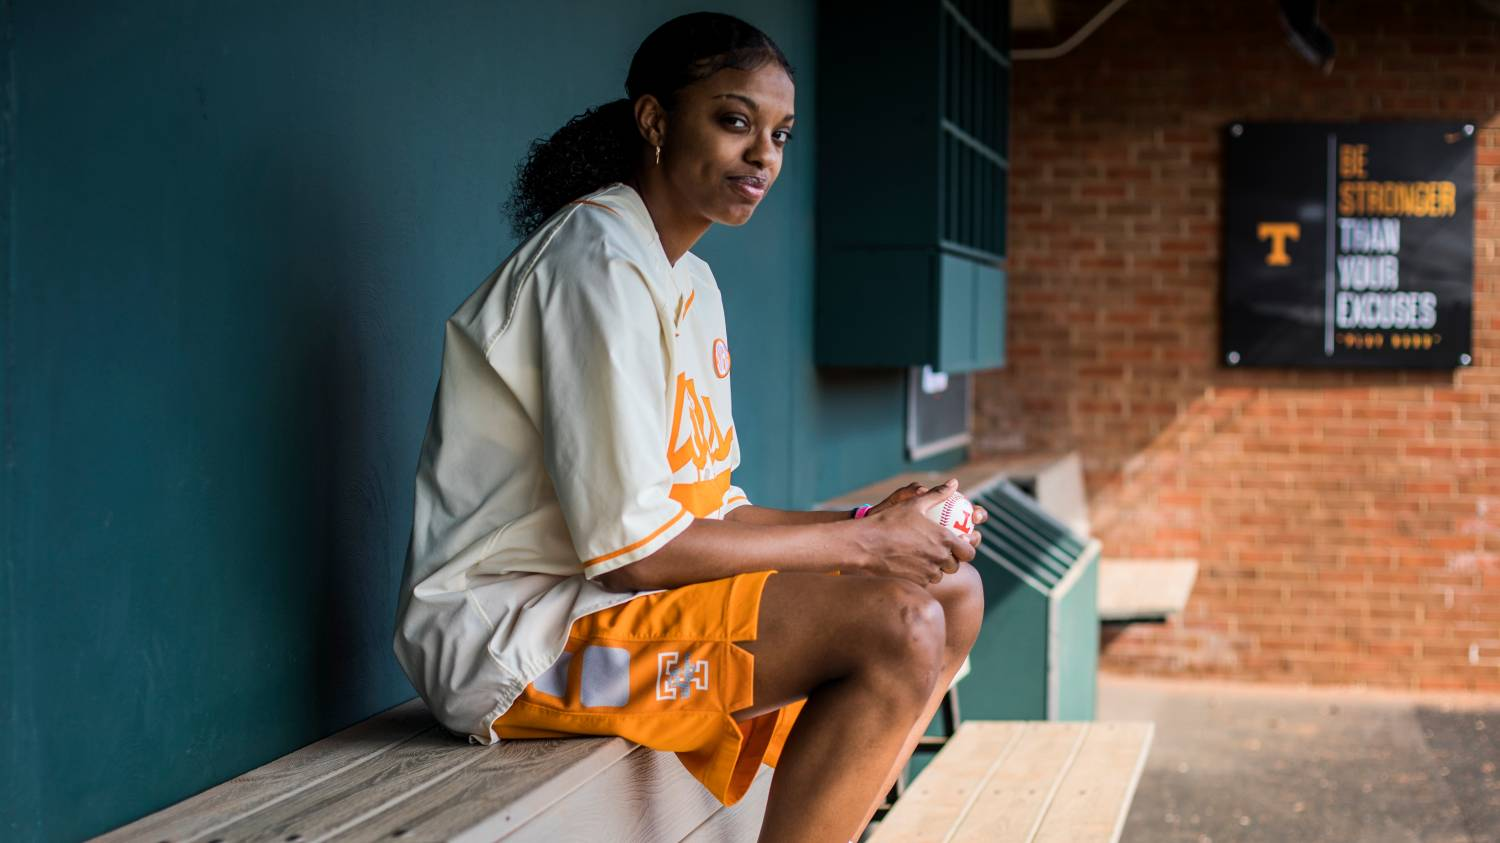 Diamond deshields daughter of former mlb player delino deshields diamond deshields daughter of former mlb player delino deshields wants to be the no 1 pick in the wnba draft malvernweather Choice Image